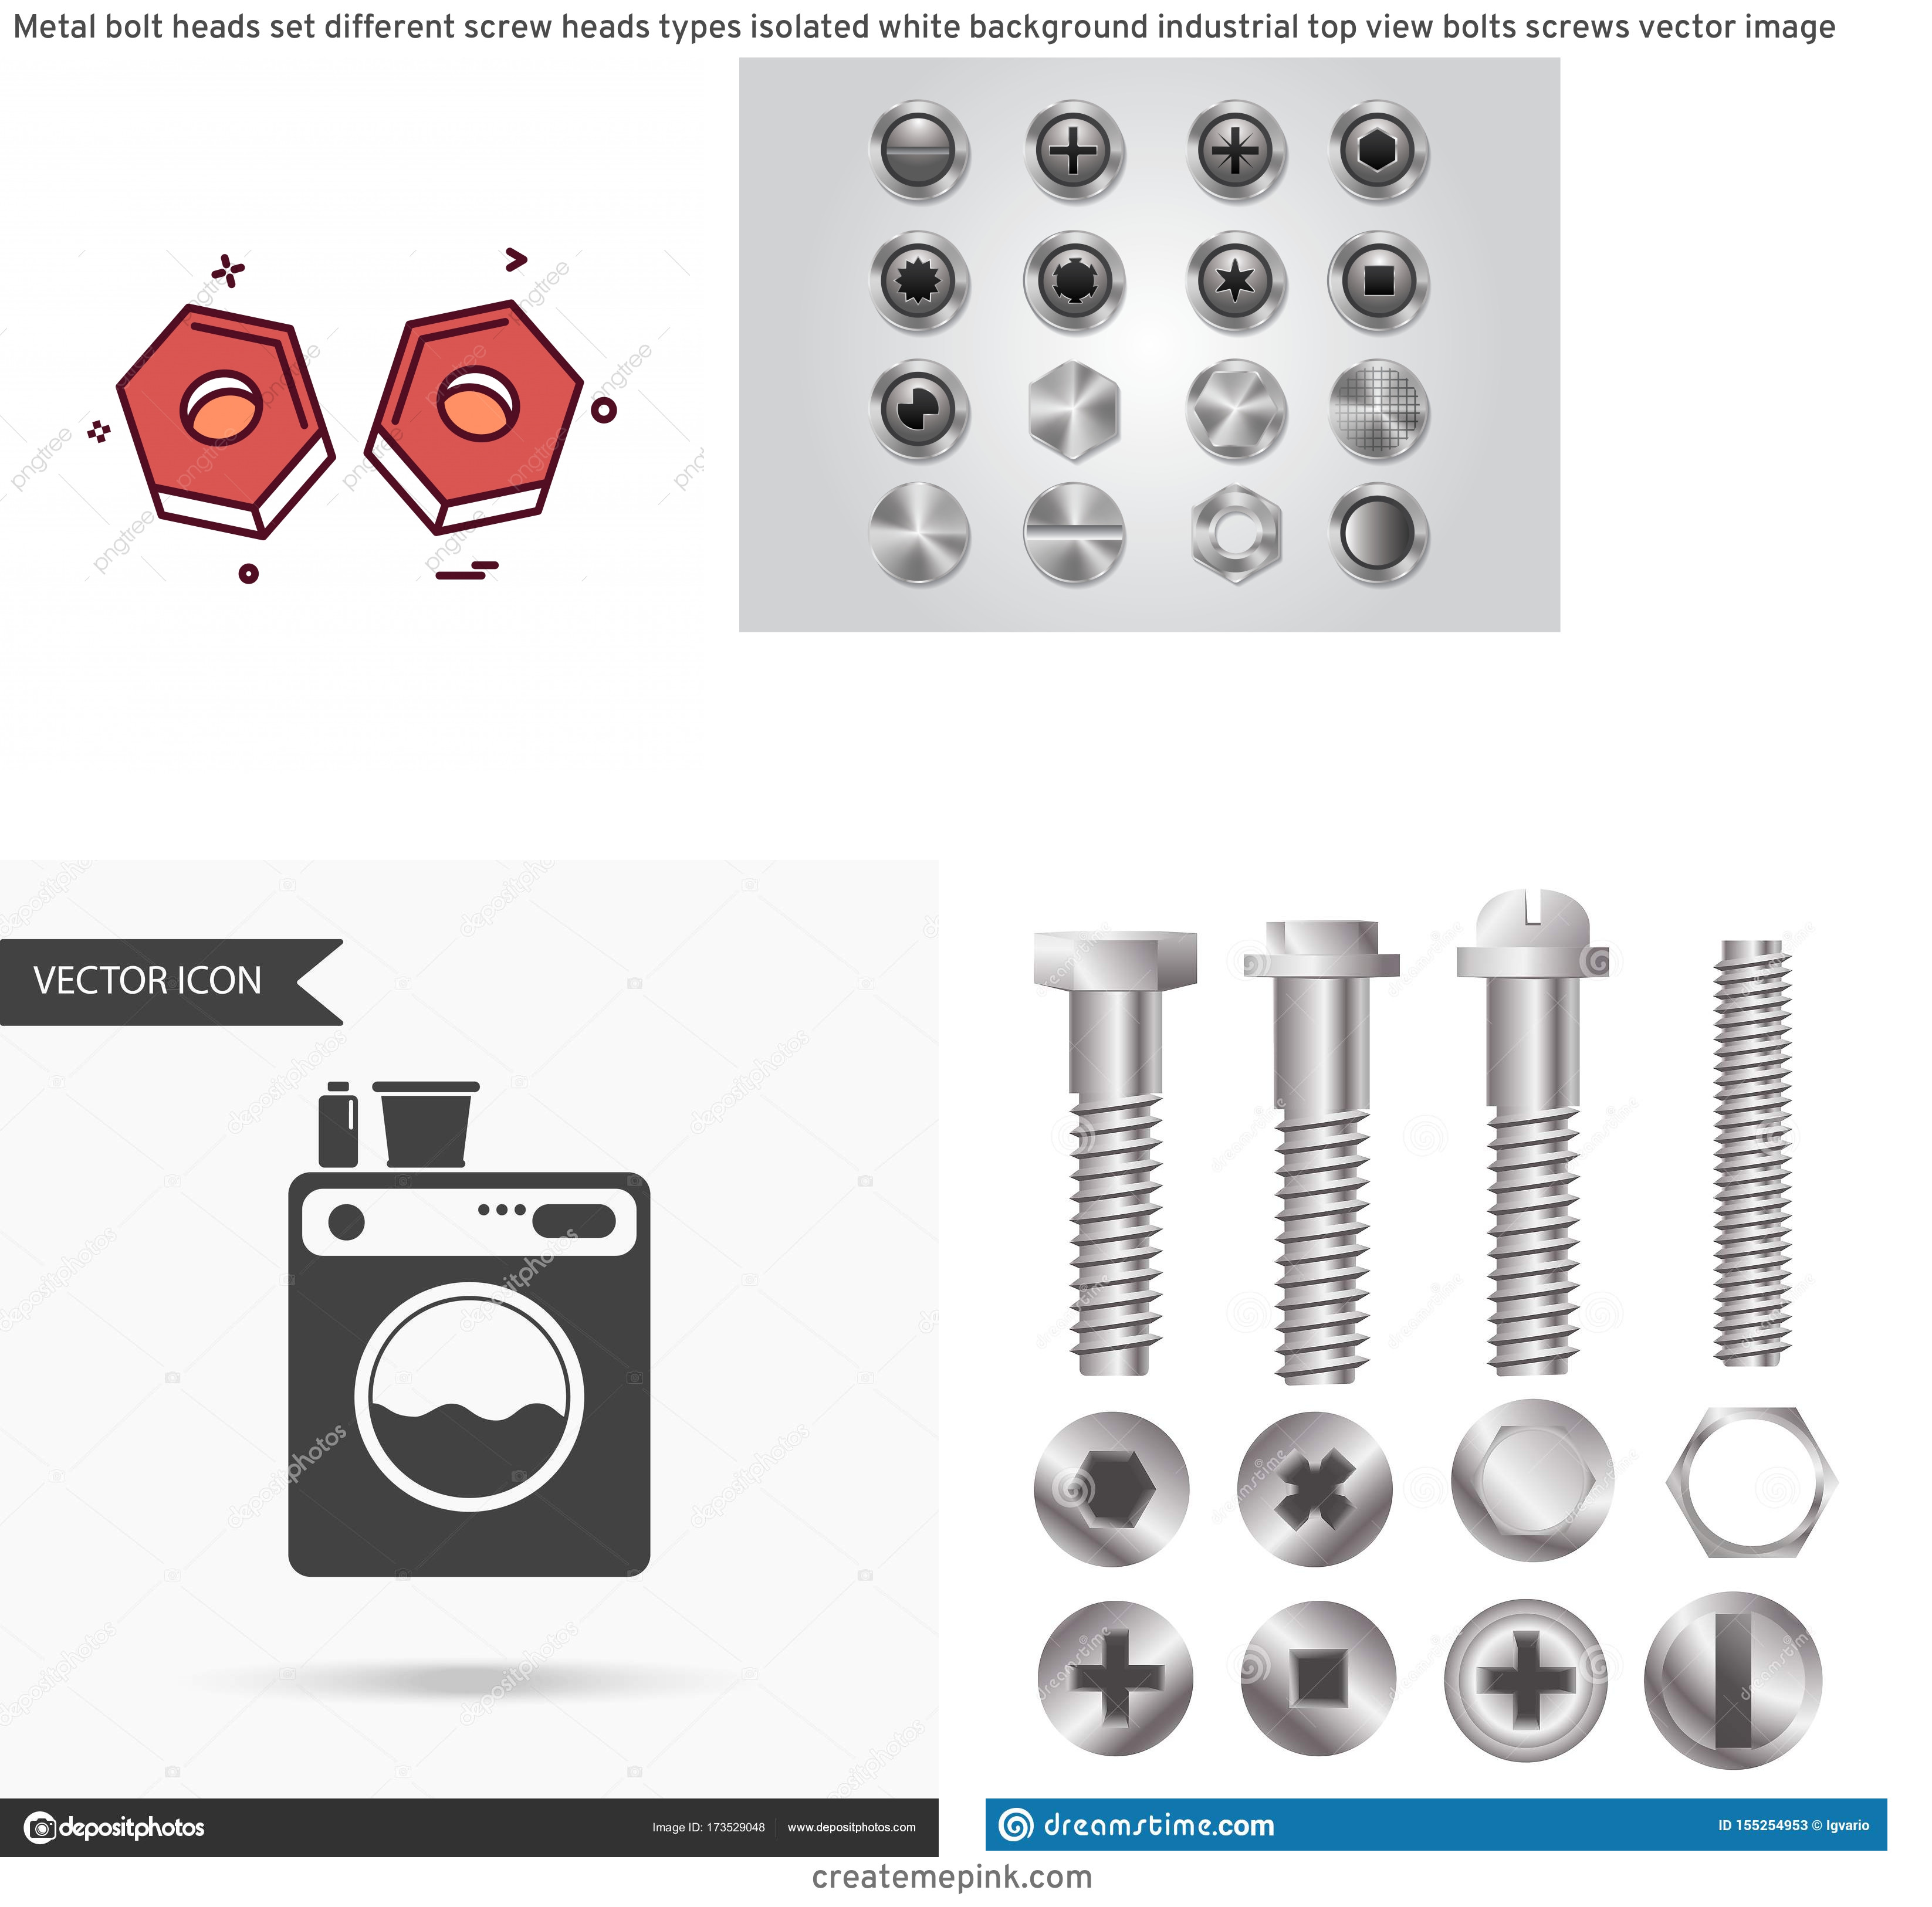 White Washer Bolt Vector: Metal Bolt Heads Set Different Screw Heads Types Isolated White Background Industrial Top View Bolts Screws Vector Image